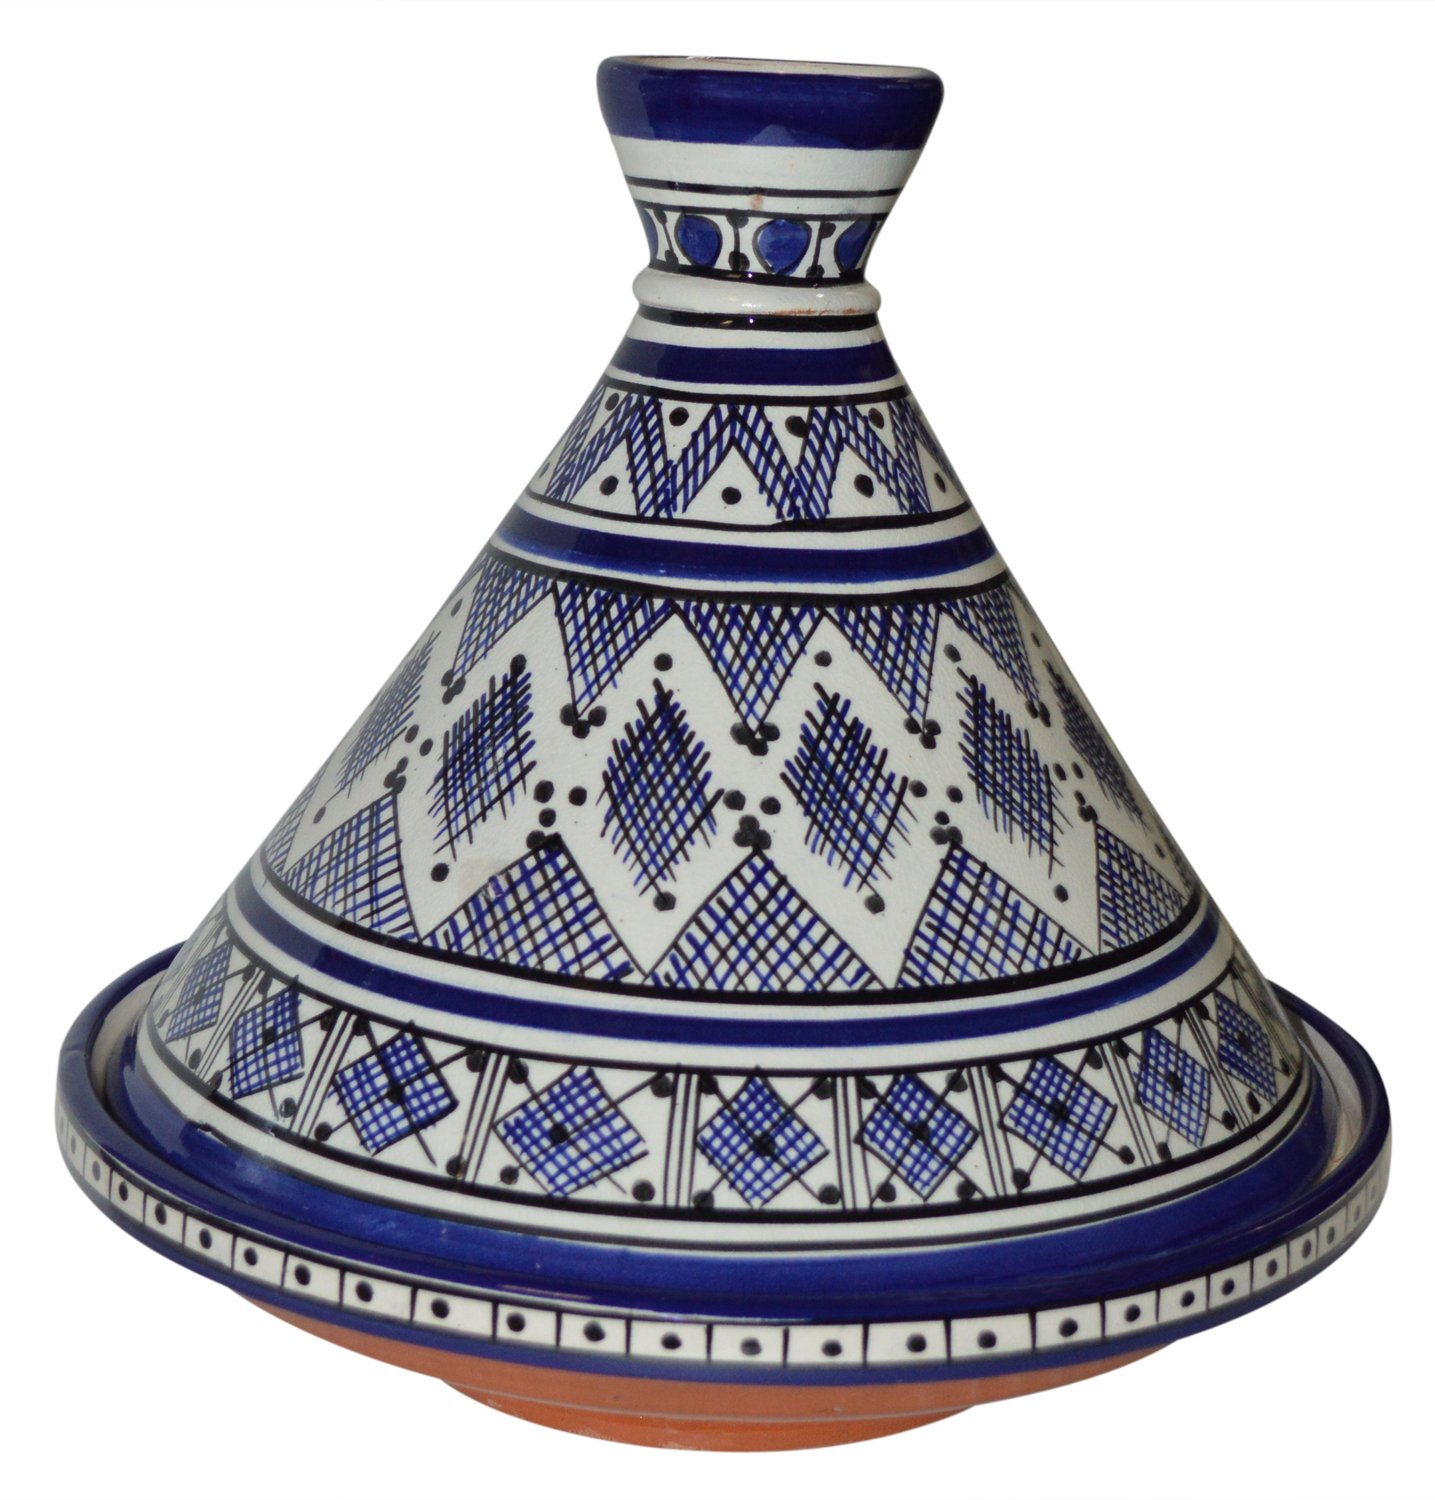 Moroccan Handmade Serving Tagine Exquisite Ceramic With Vivid colors Traditional 12 inches Diameter by Serving Tagines